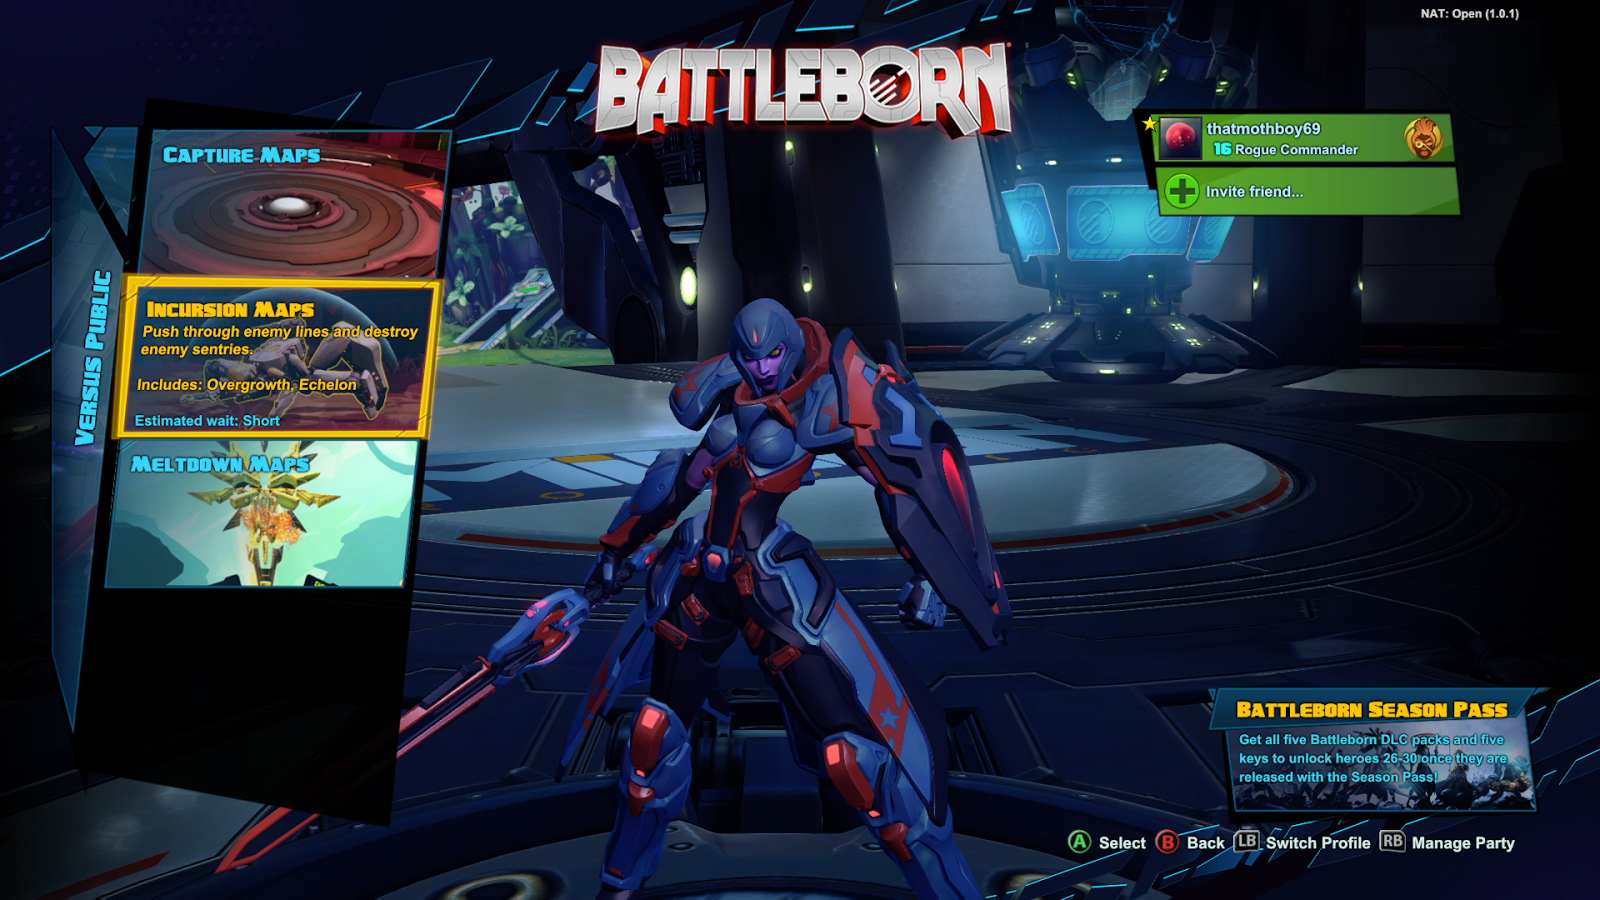 battleborn s campaign follows a story of 5 opposing galactic factions uniting to save the last hospitable planet against a galaxy conquering force run by a